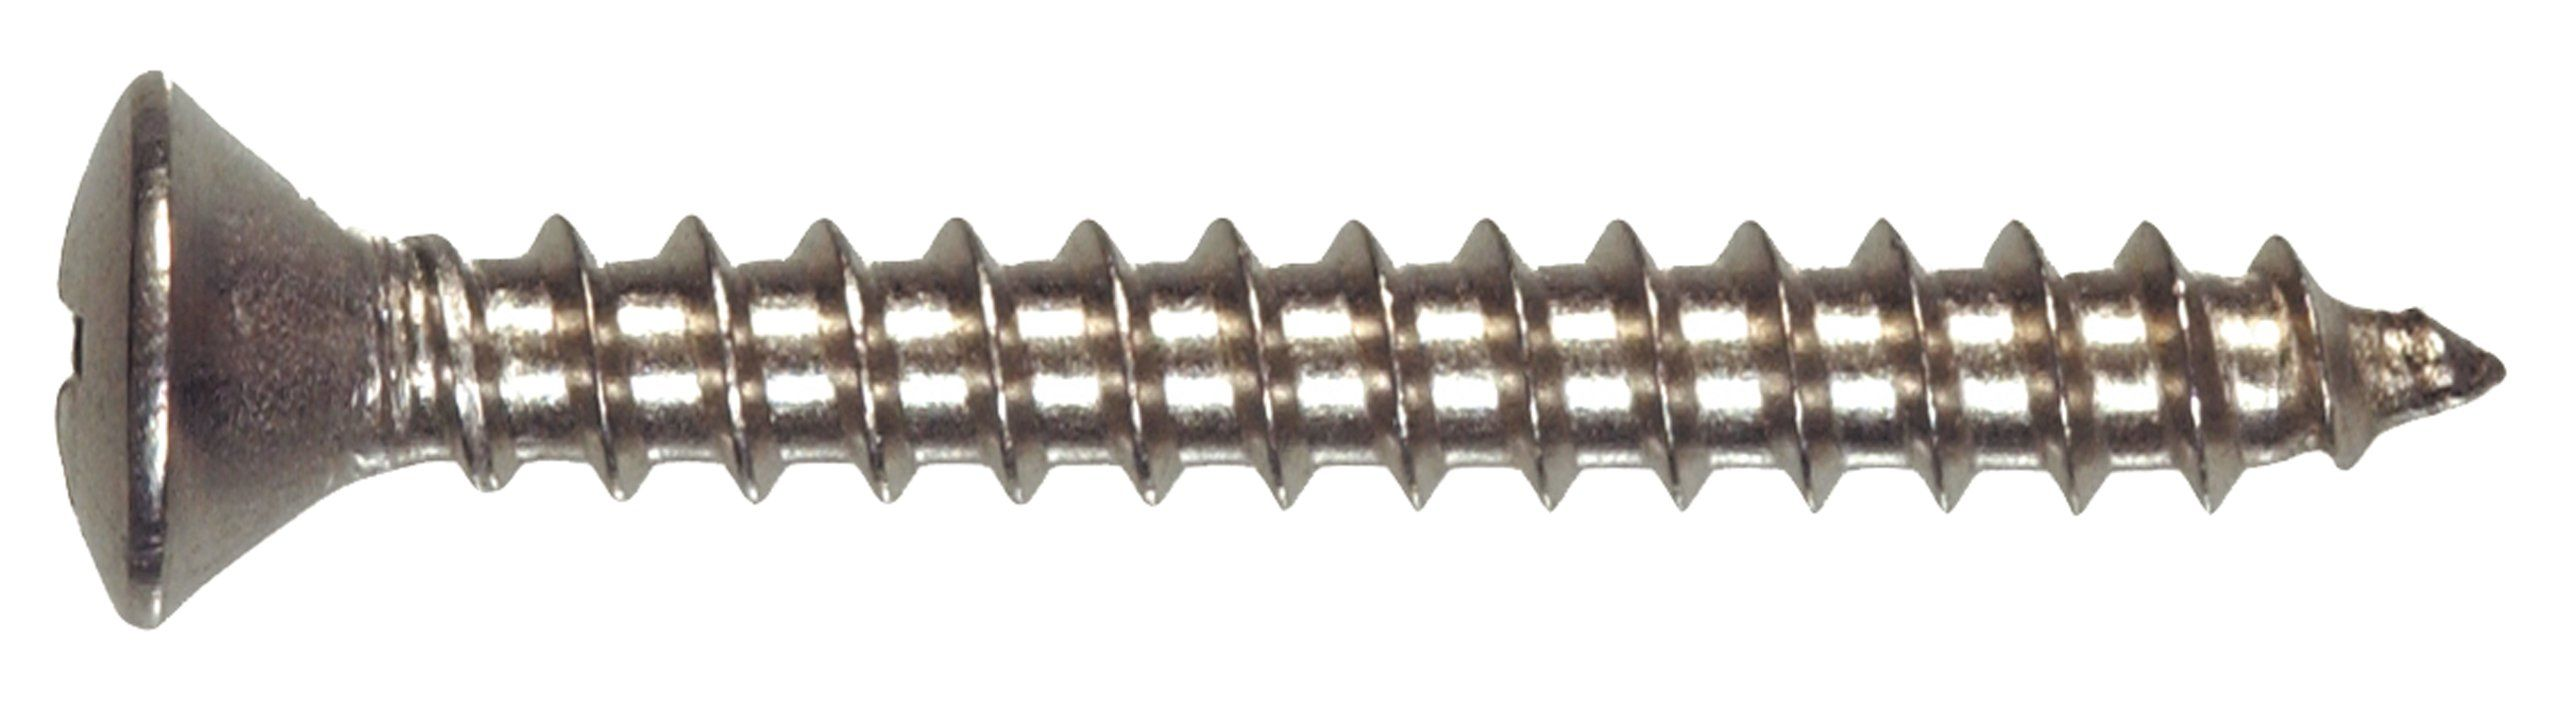 The Hillman Group 823666 Stainless Steel Oval Head Phillips Sheet Metal Screw 8 X 1 Inch 1 Stainless Steel Sheet Metal Screws And Bolts Stainless Steel Sheet